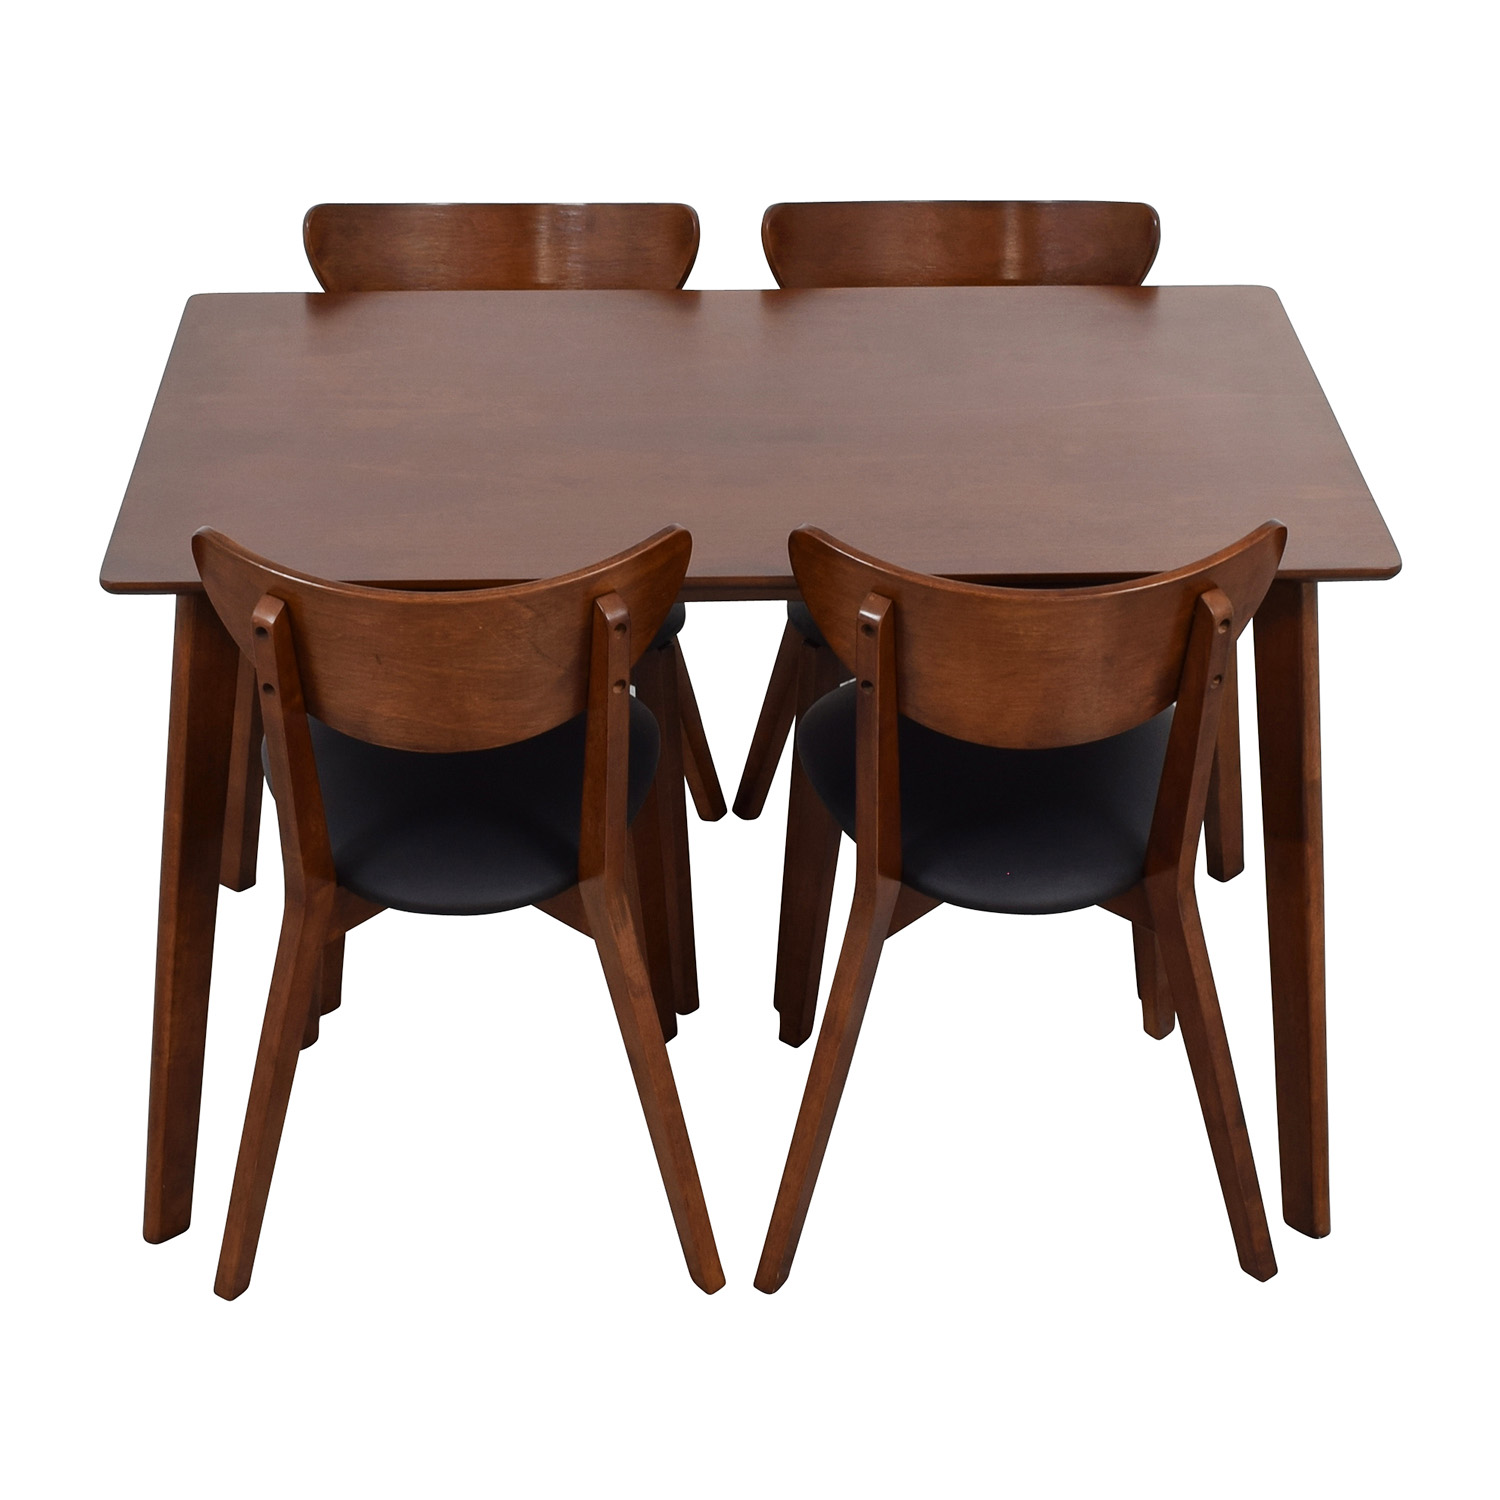 Wholesale Interiors Brown Dining Table Set with Four Chairs on sale